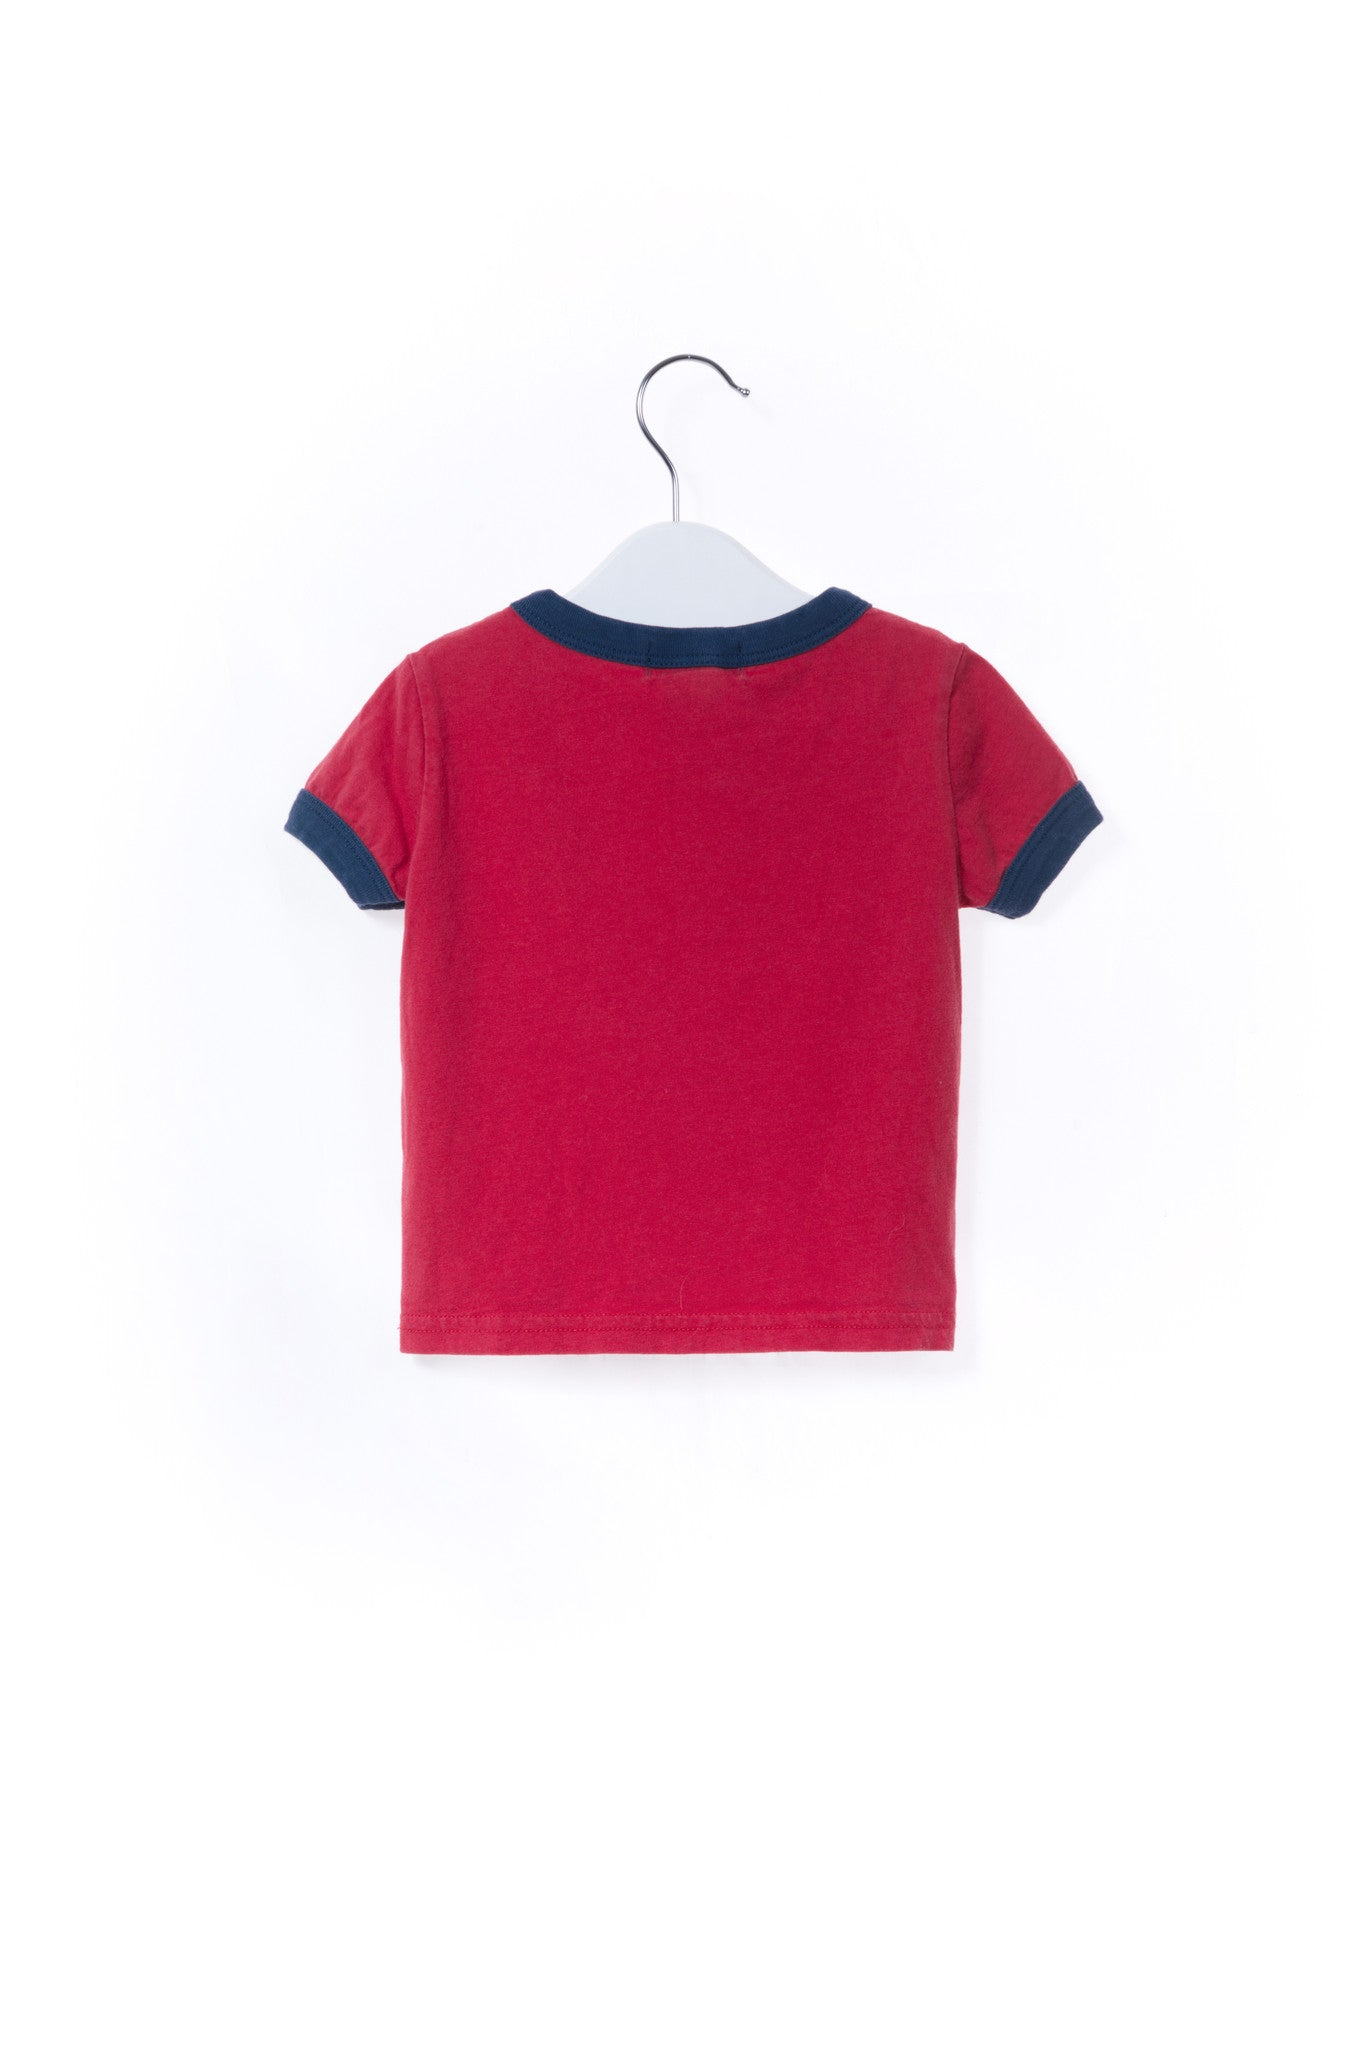 T-Shirt 6-9M, Polo Ralph Lauren at Retykle - Online Baby & Kids Clothing Up to 90% Off